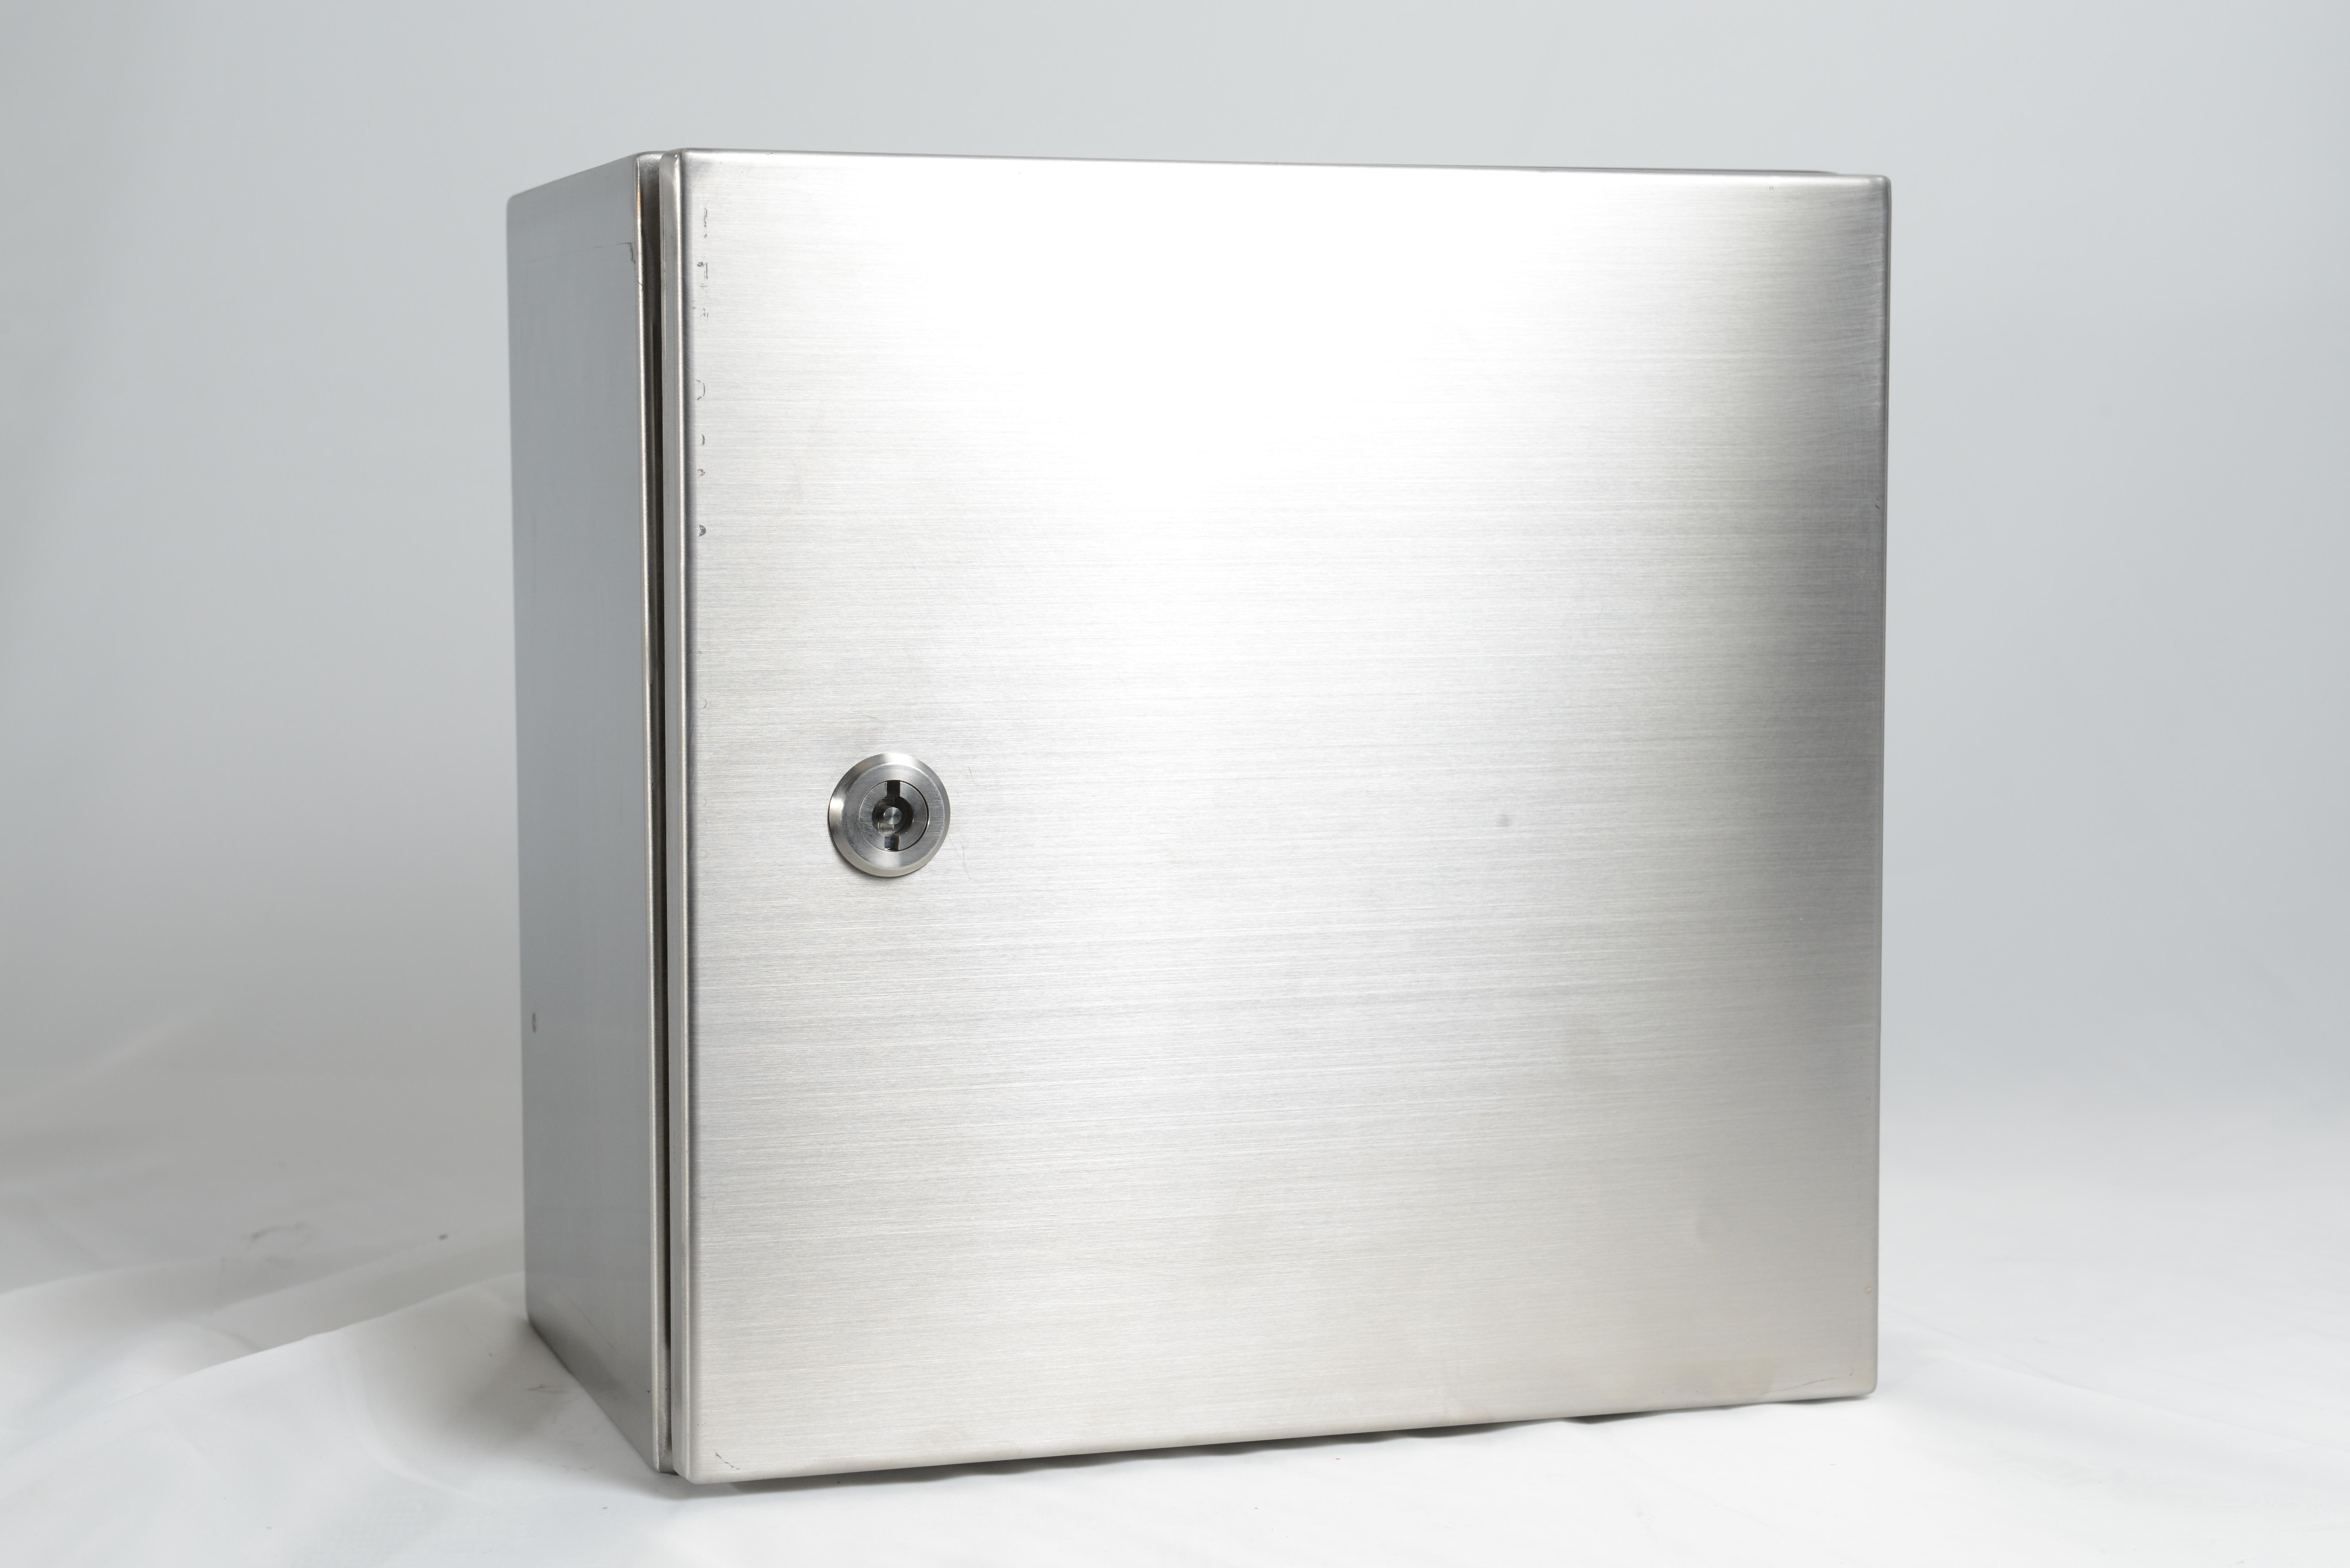 RCG stainless steel Enclosure 316 grade 800x600x300mm - Wall mounting